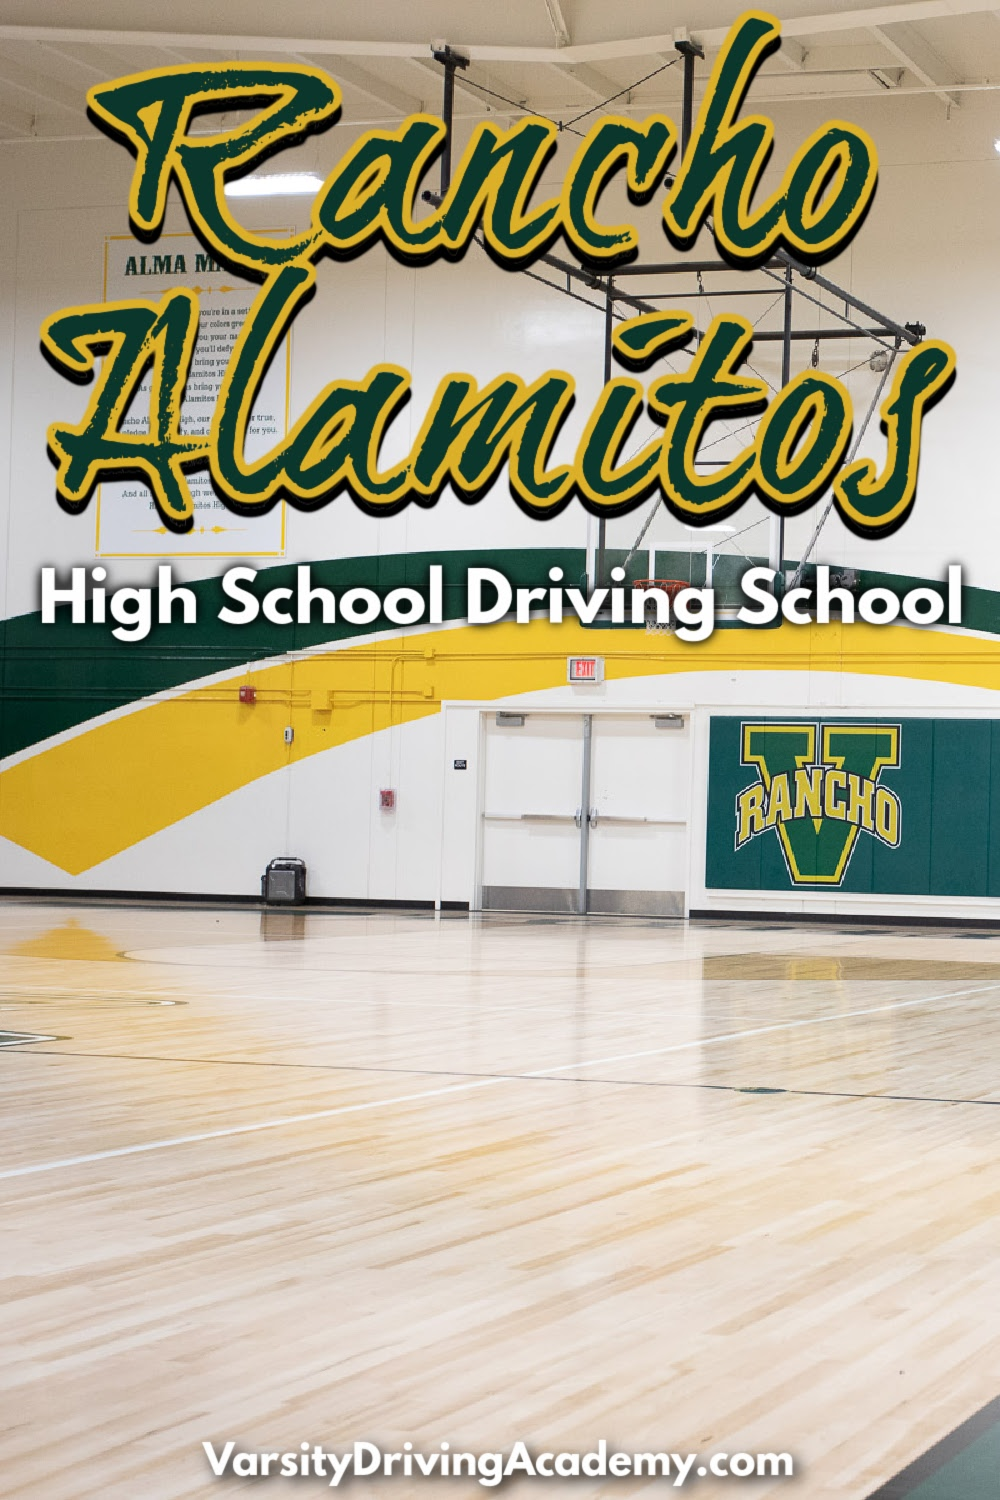 Varsity Driving Academy is the best Rancho Alamitos High School driving school option for students to learn how to drive safely.